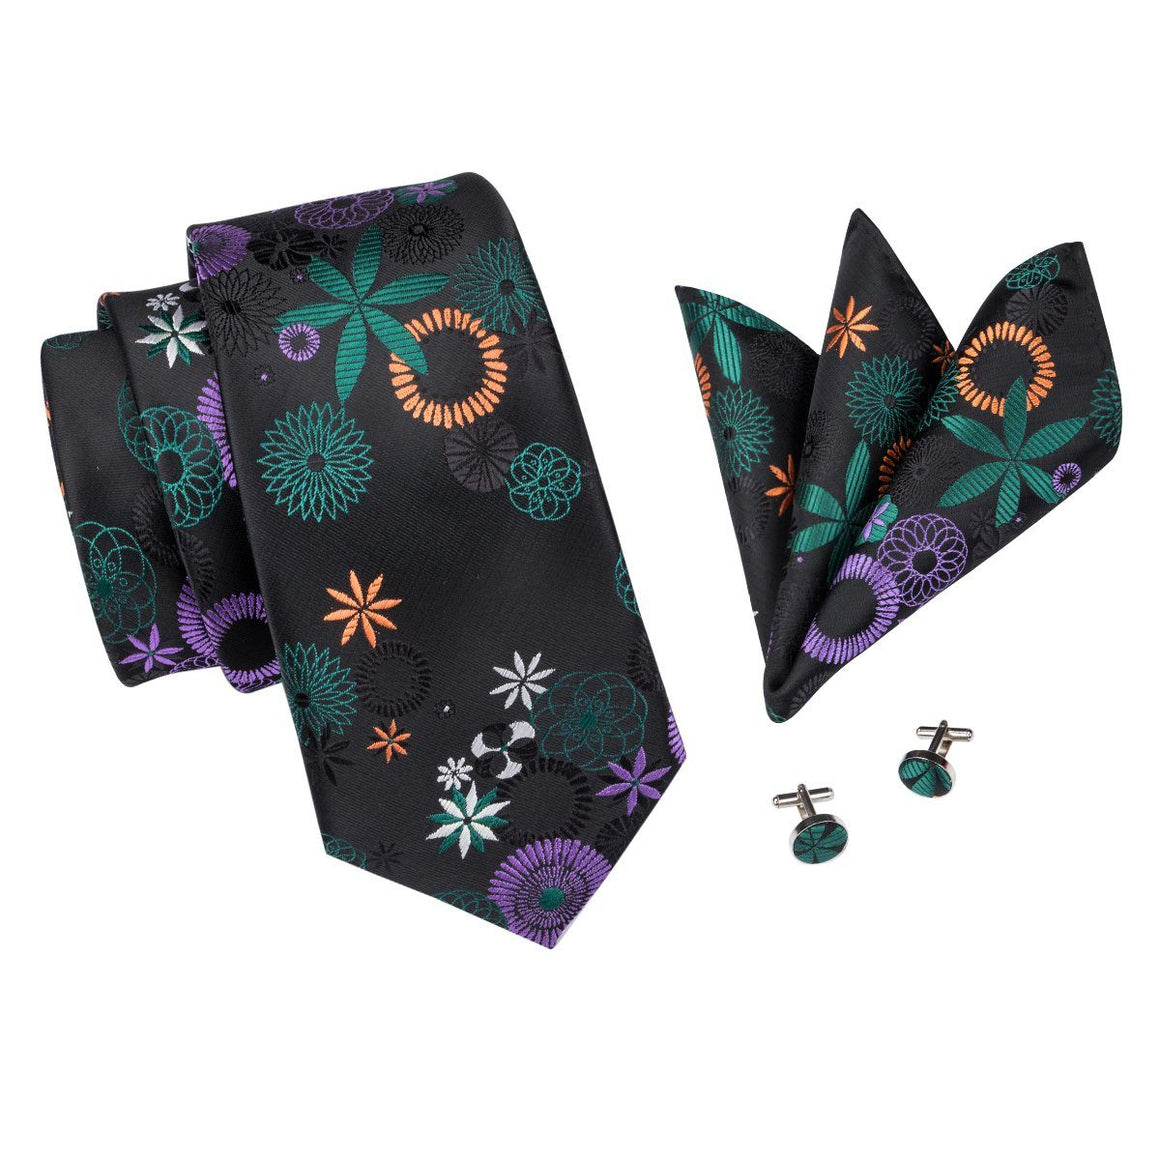 The Green Leaf Tie, Pocket Square and Cufflinks - SOPHGENT